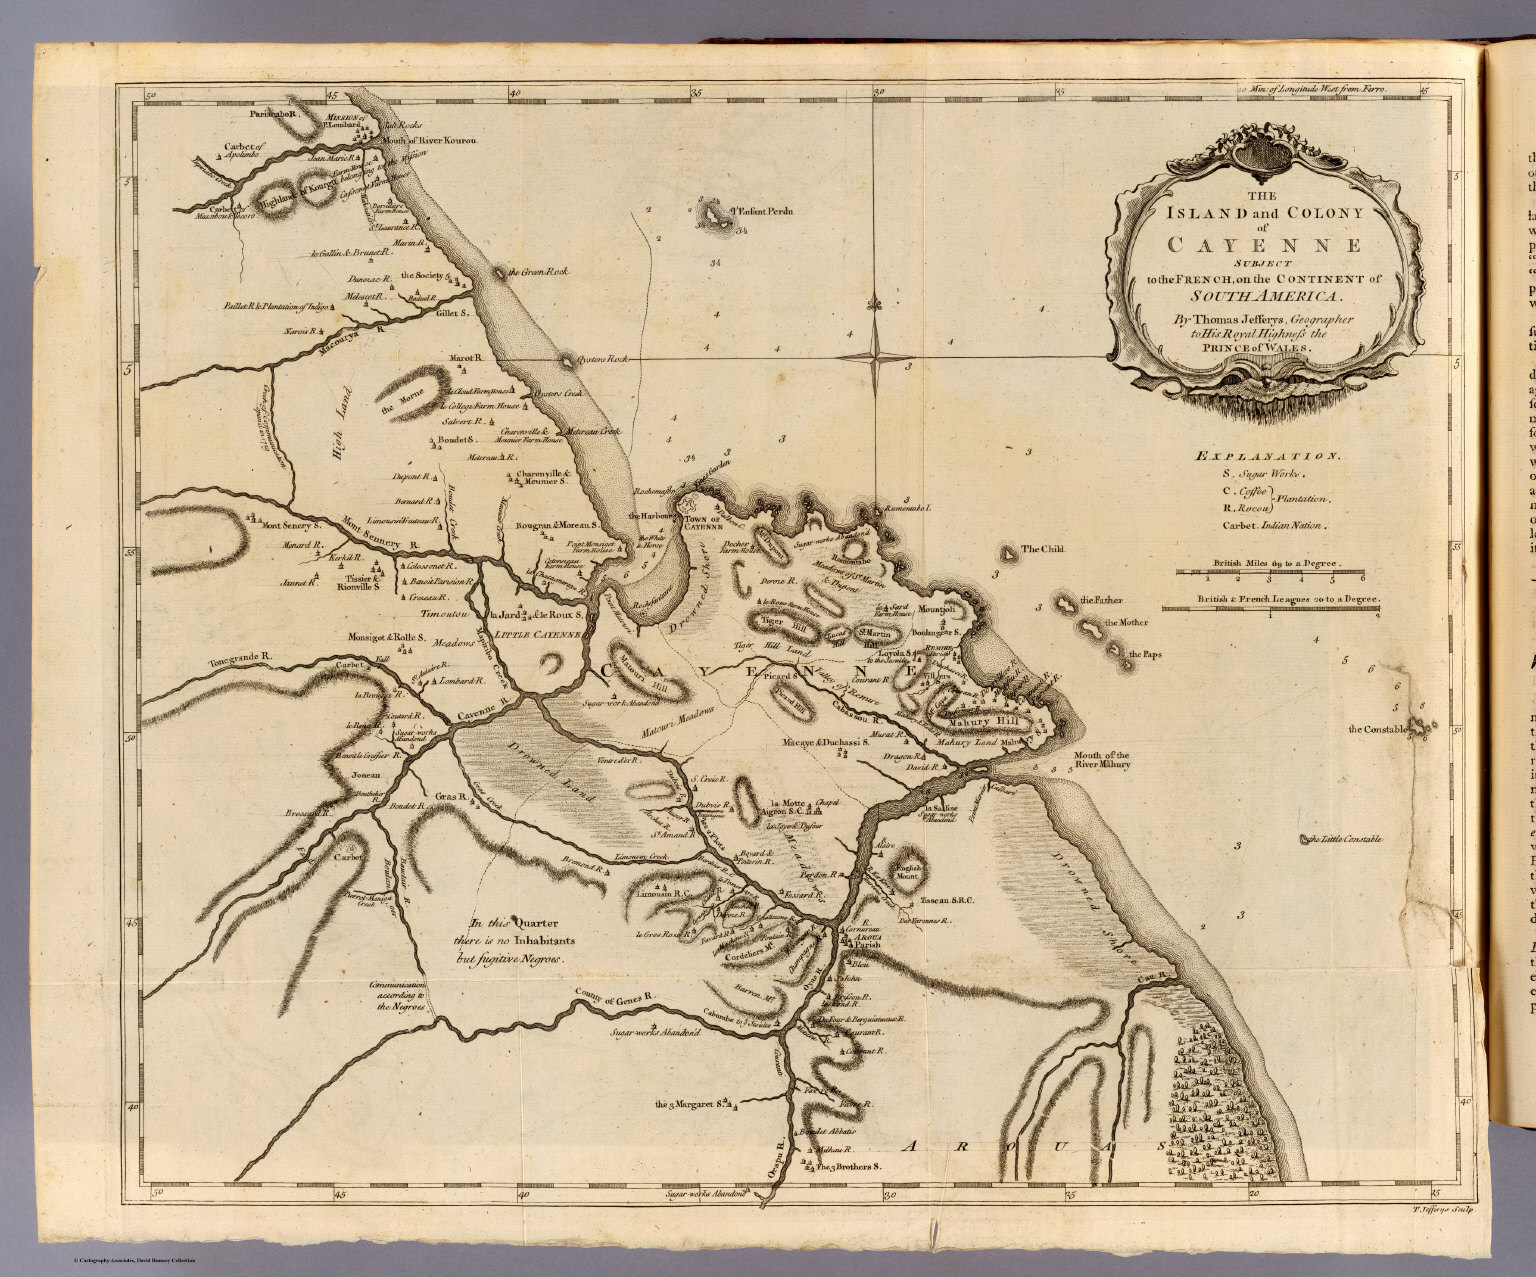 Cayenne David Rumsey Historical Map Collection